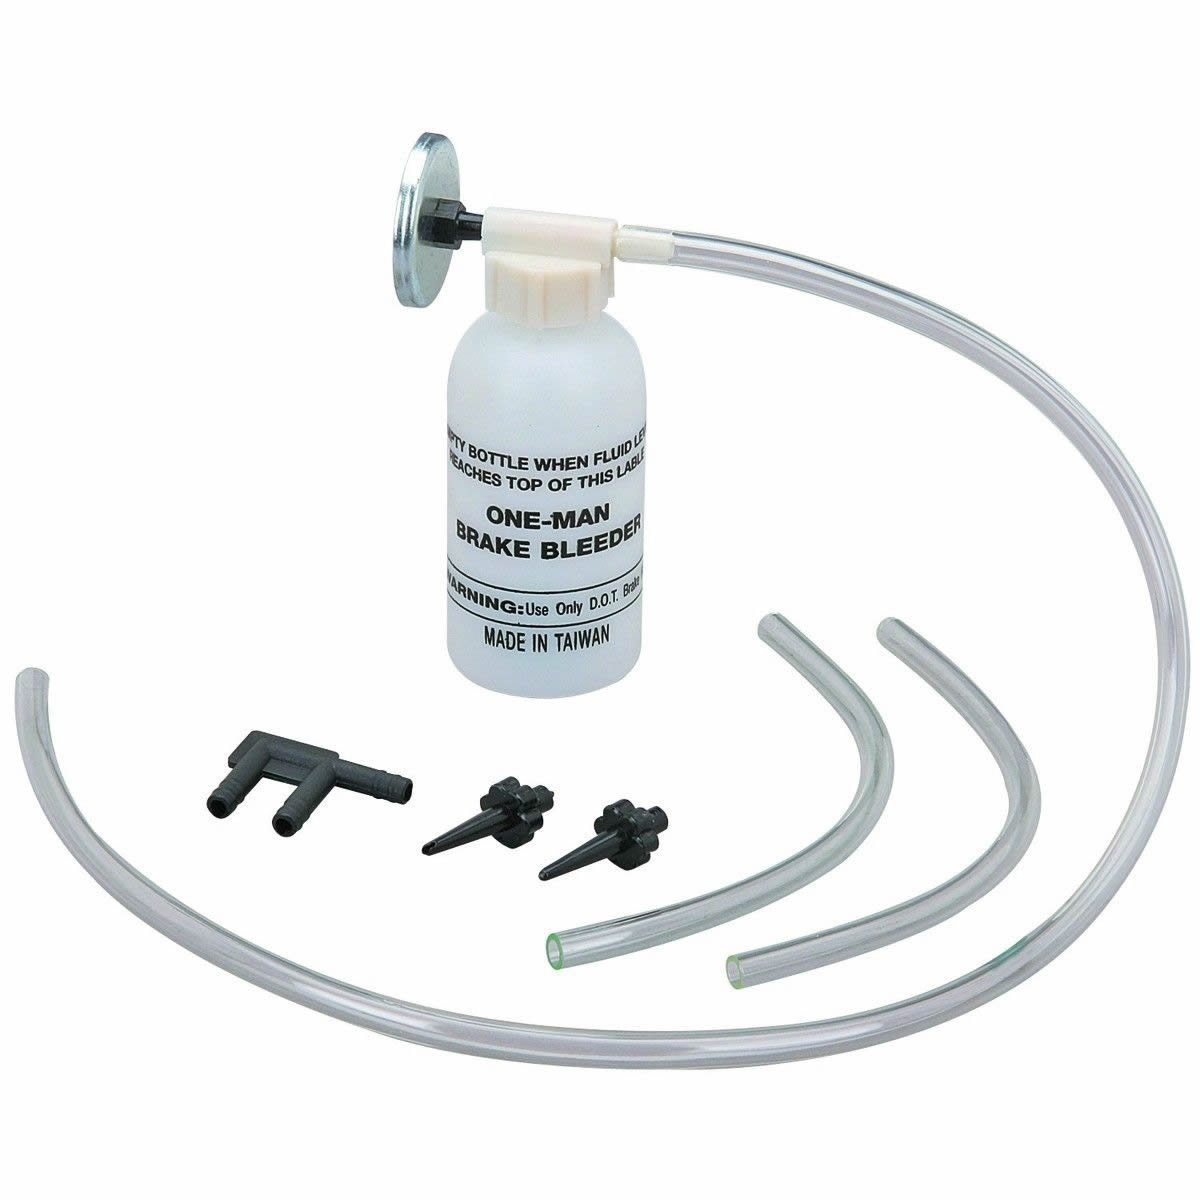 Cheap Clutch Bleeder, find Clutch Bleeder deals on line at